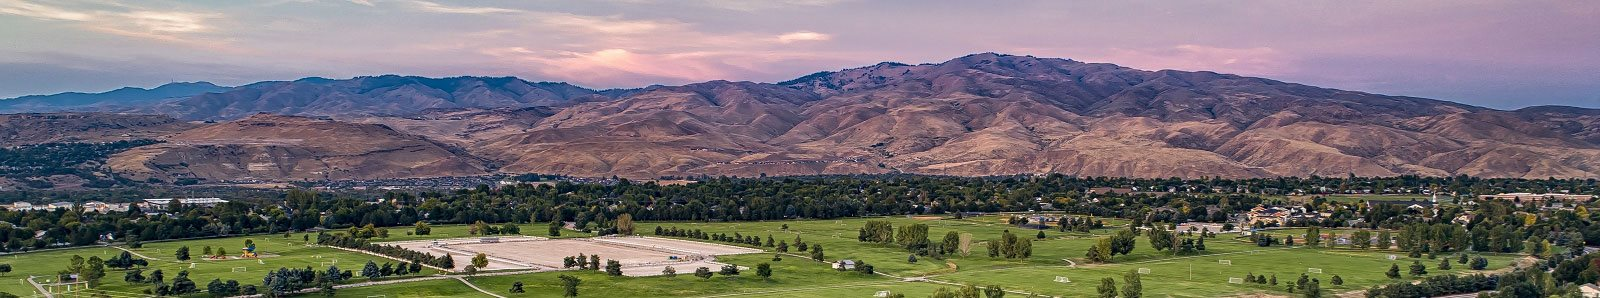 Balconies With City And Mountain Views at Columbia Village, Idaho, 83716